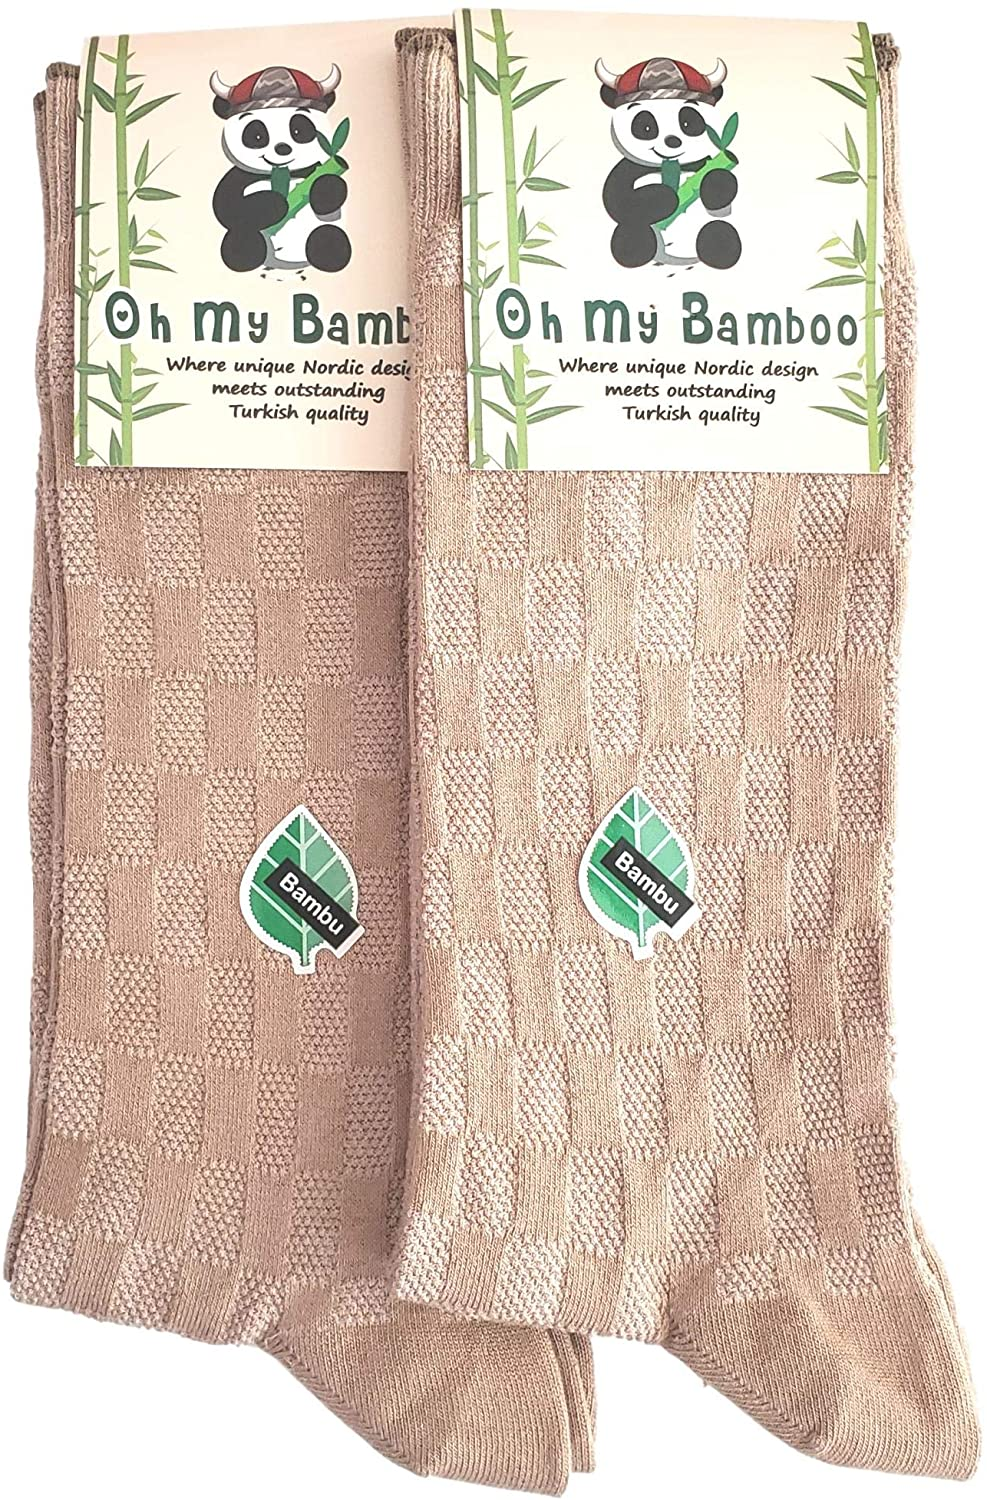 Oh My Bamboo Mens Bamboo Socks Luxury Seamless Textured Dress Socks Made From Luxurious Turkish Bamboo Yarn